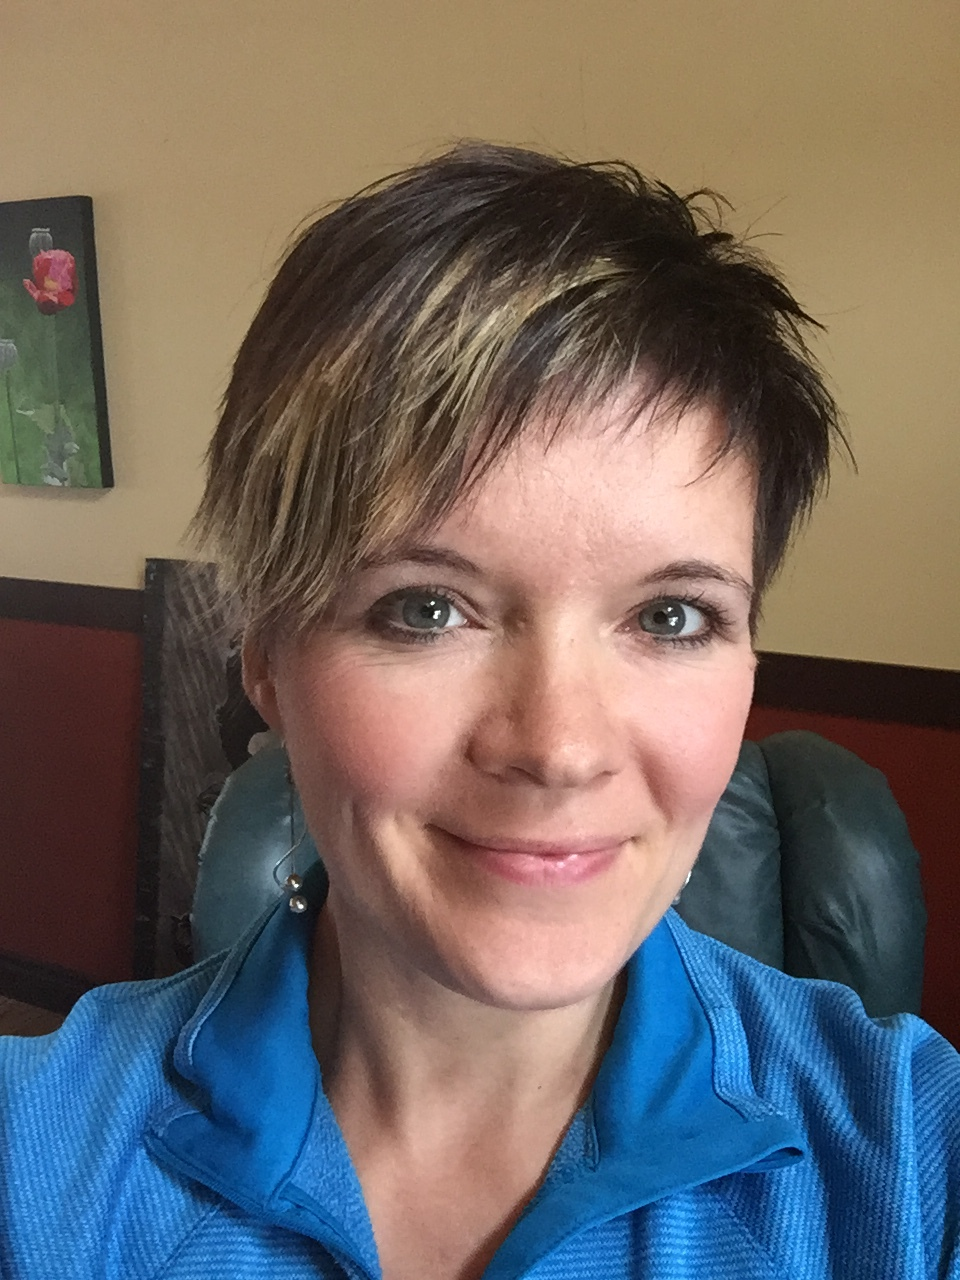 Leslie Cartwright - Finished her manuscript in 1 year, 2 months with Author Accelerator.